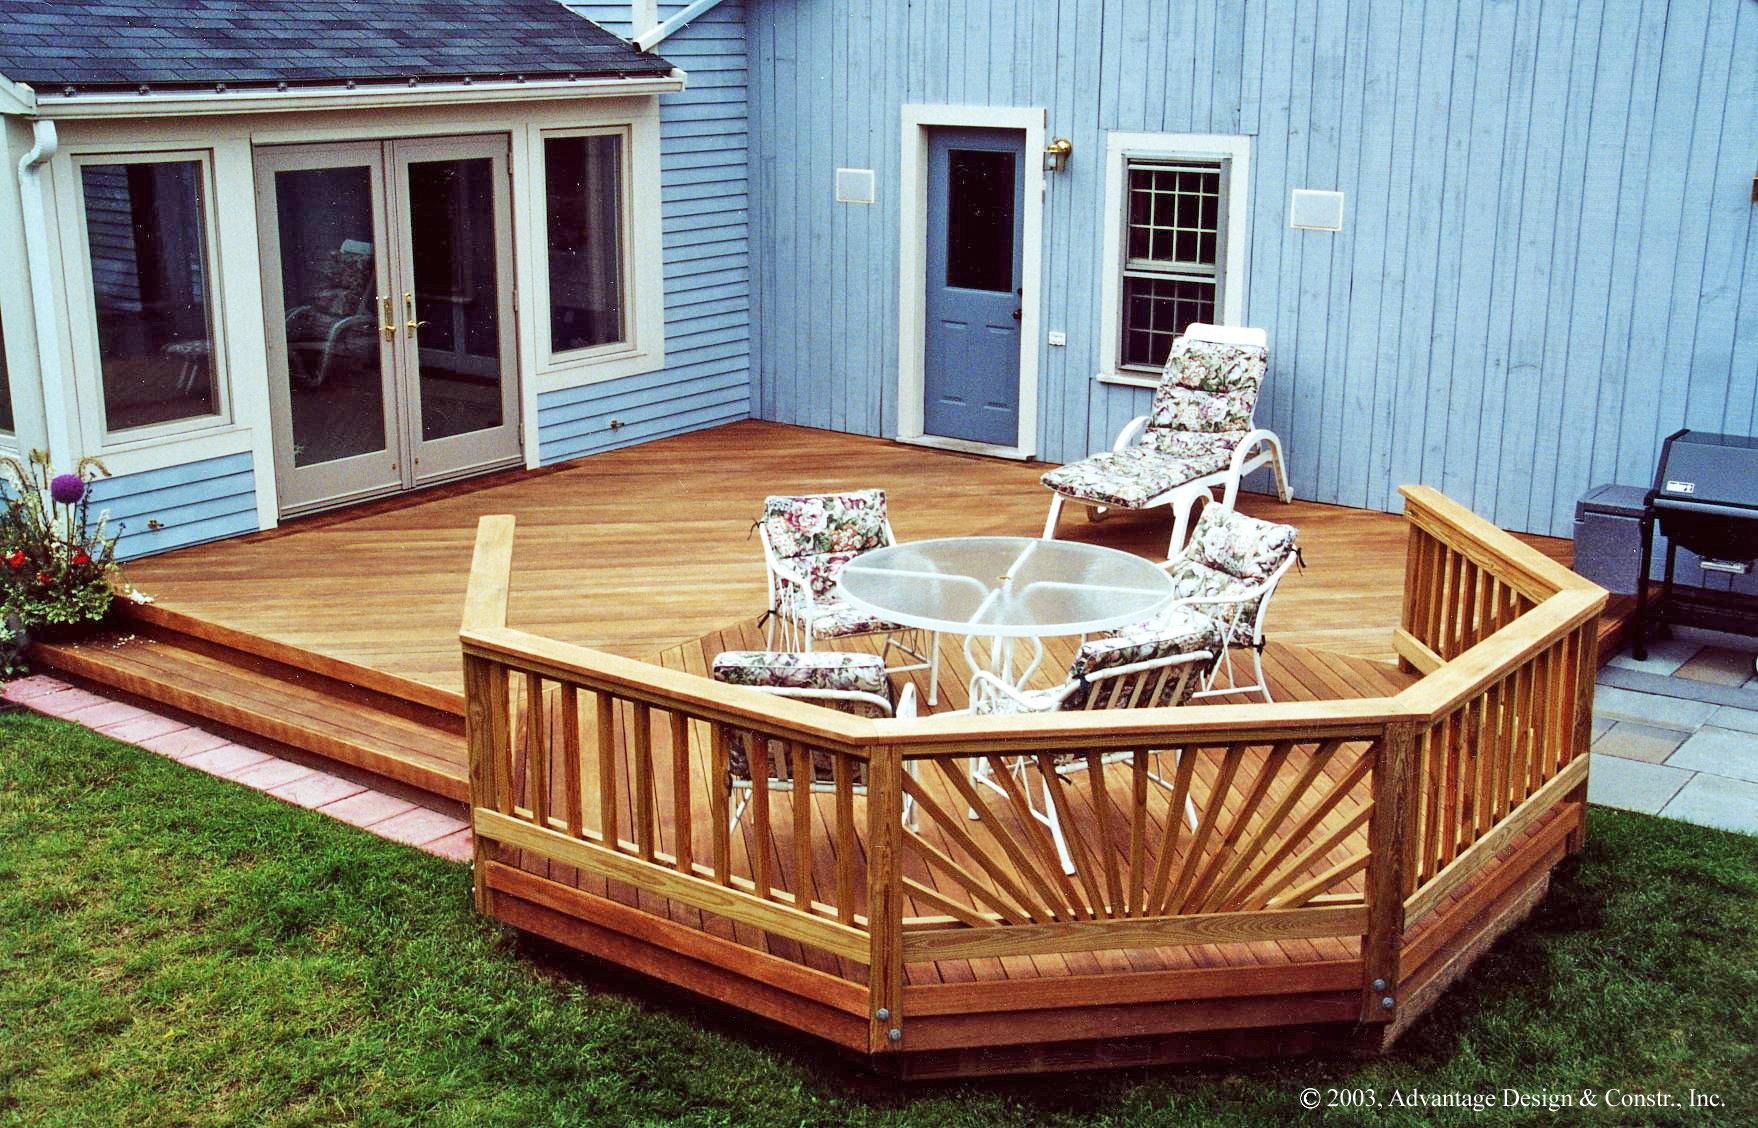 Choosing a deck or a patio suburban boston decks and for Backyard decks